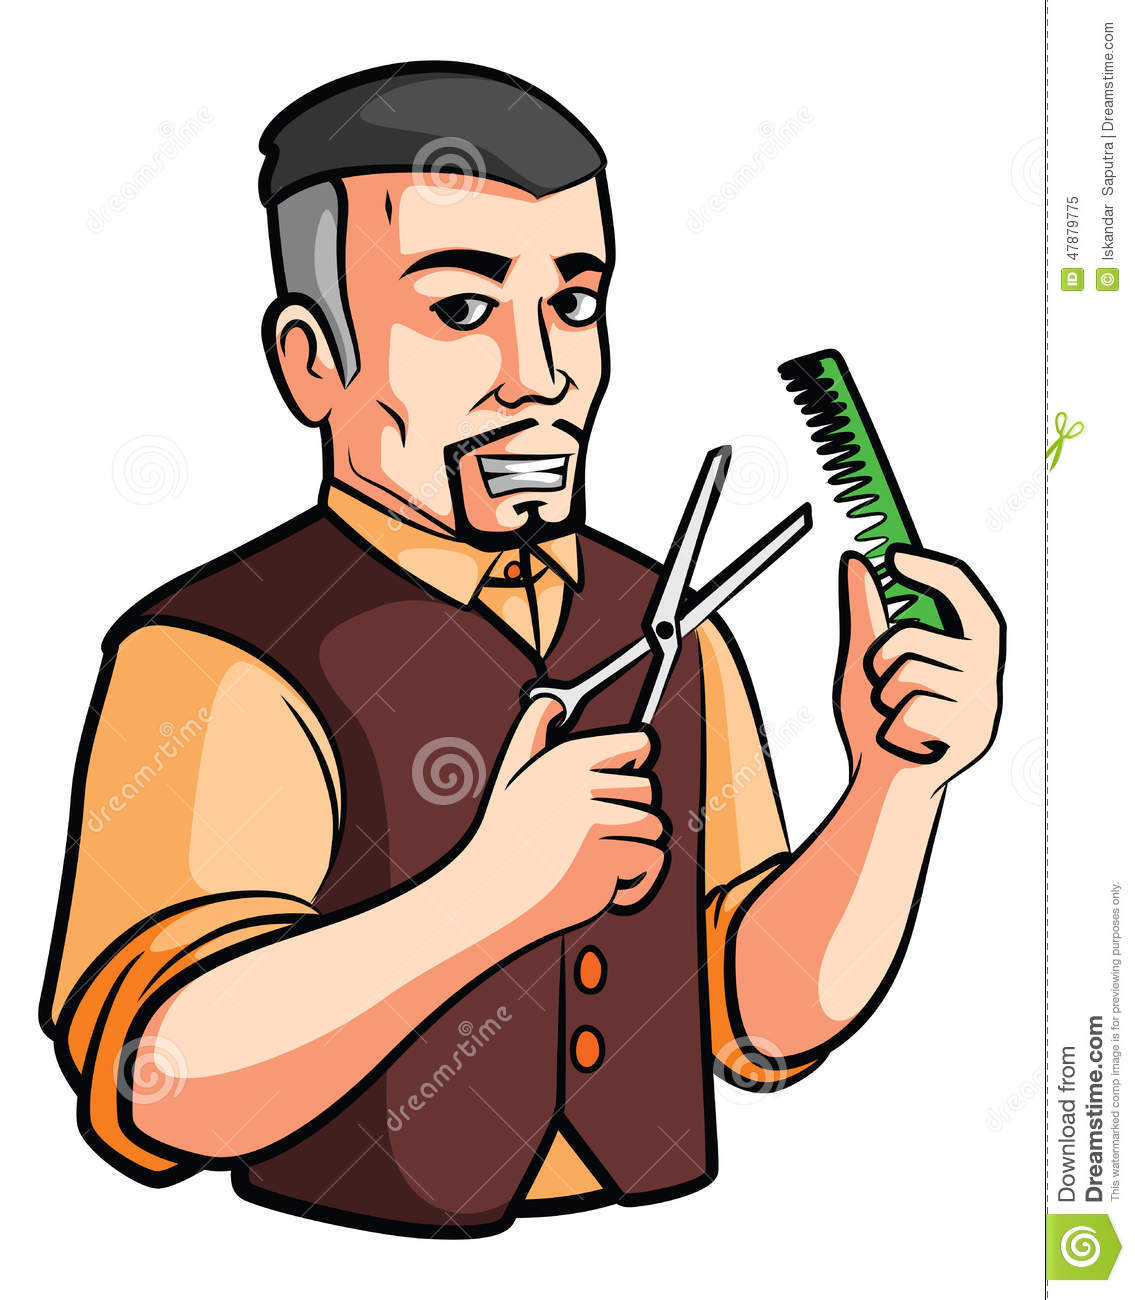 Barber Clipart Barber shop stock vect...